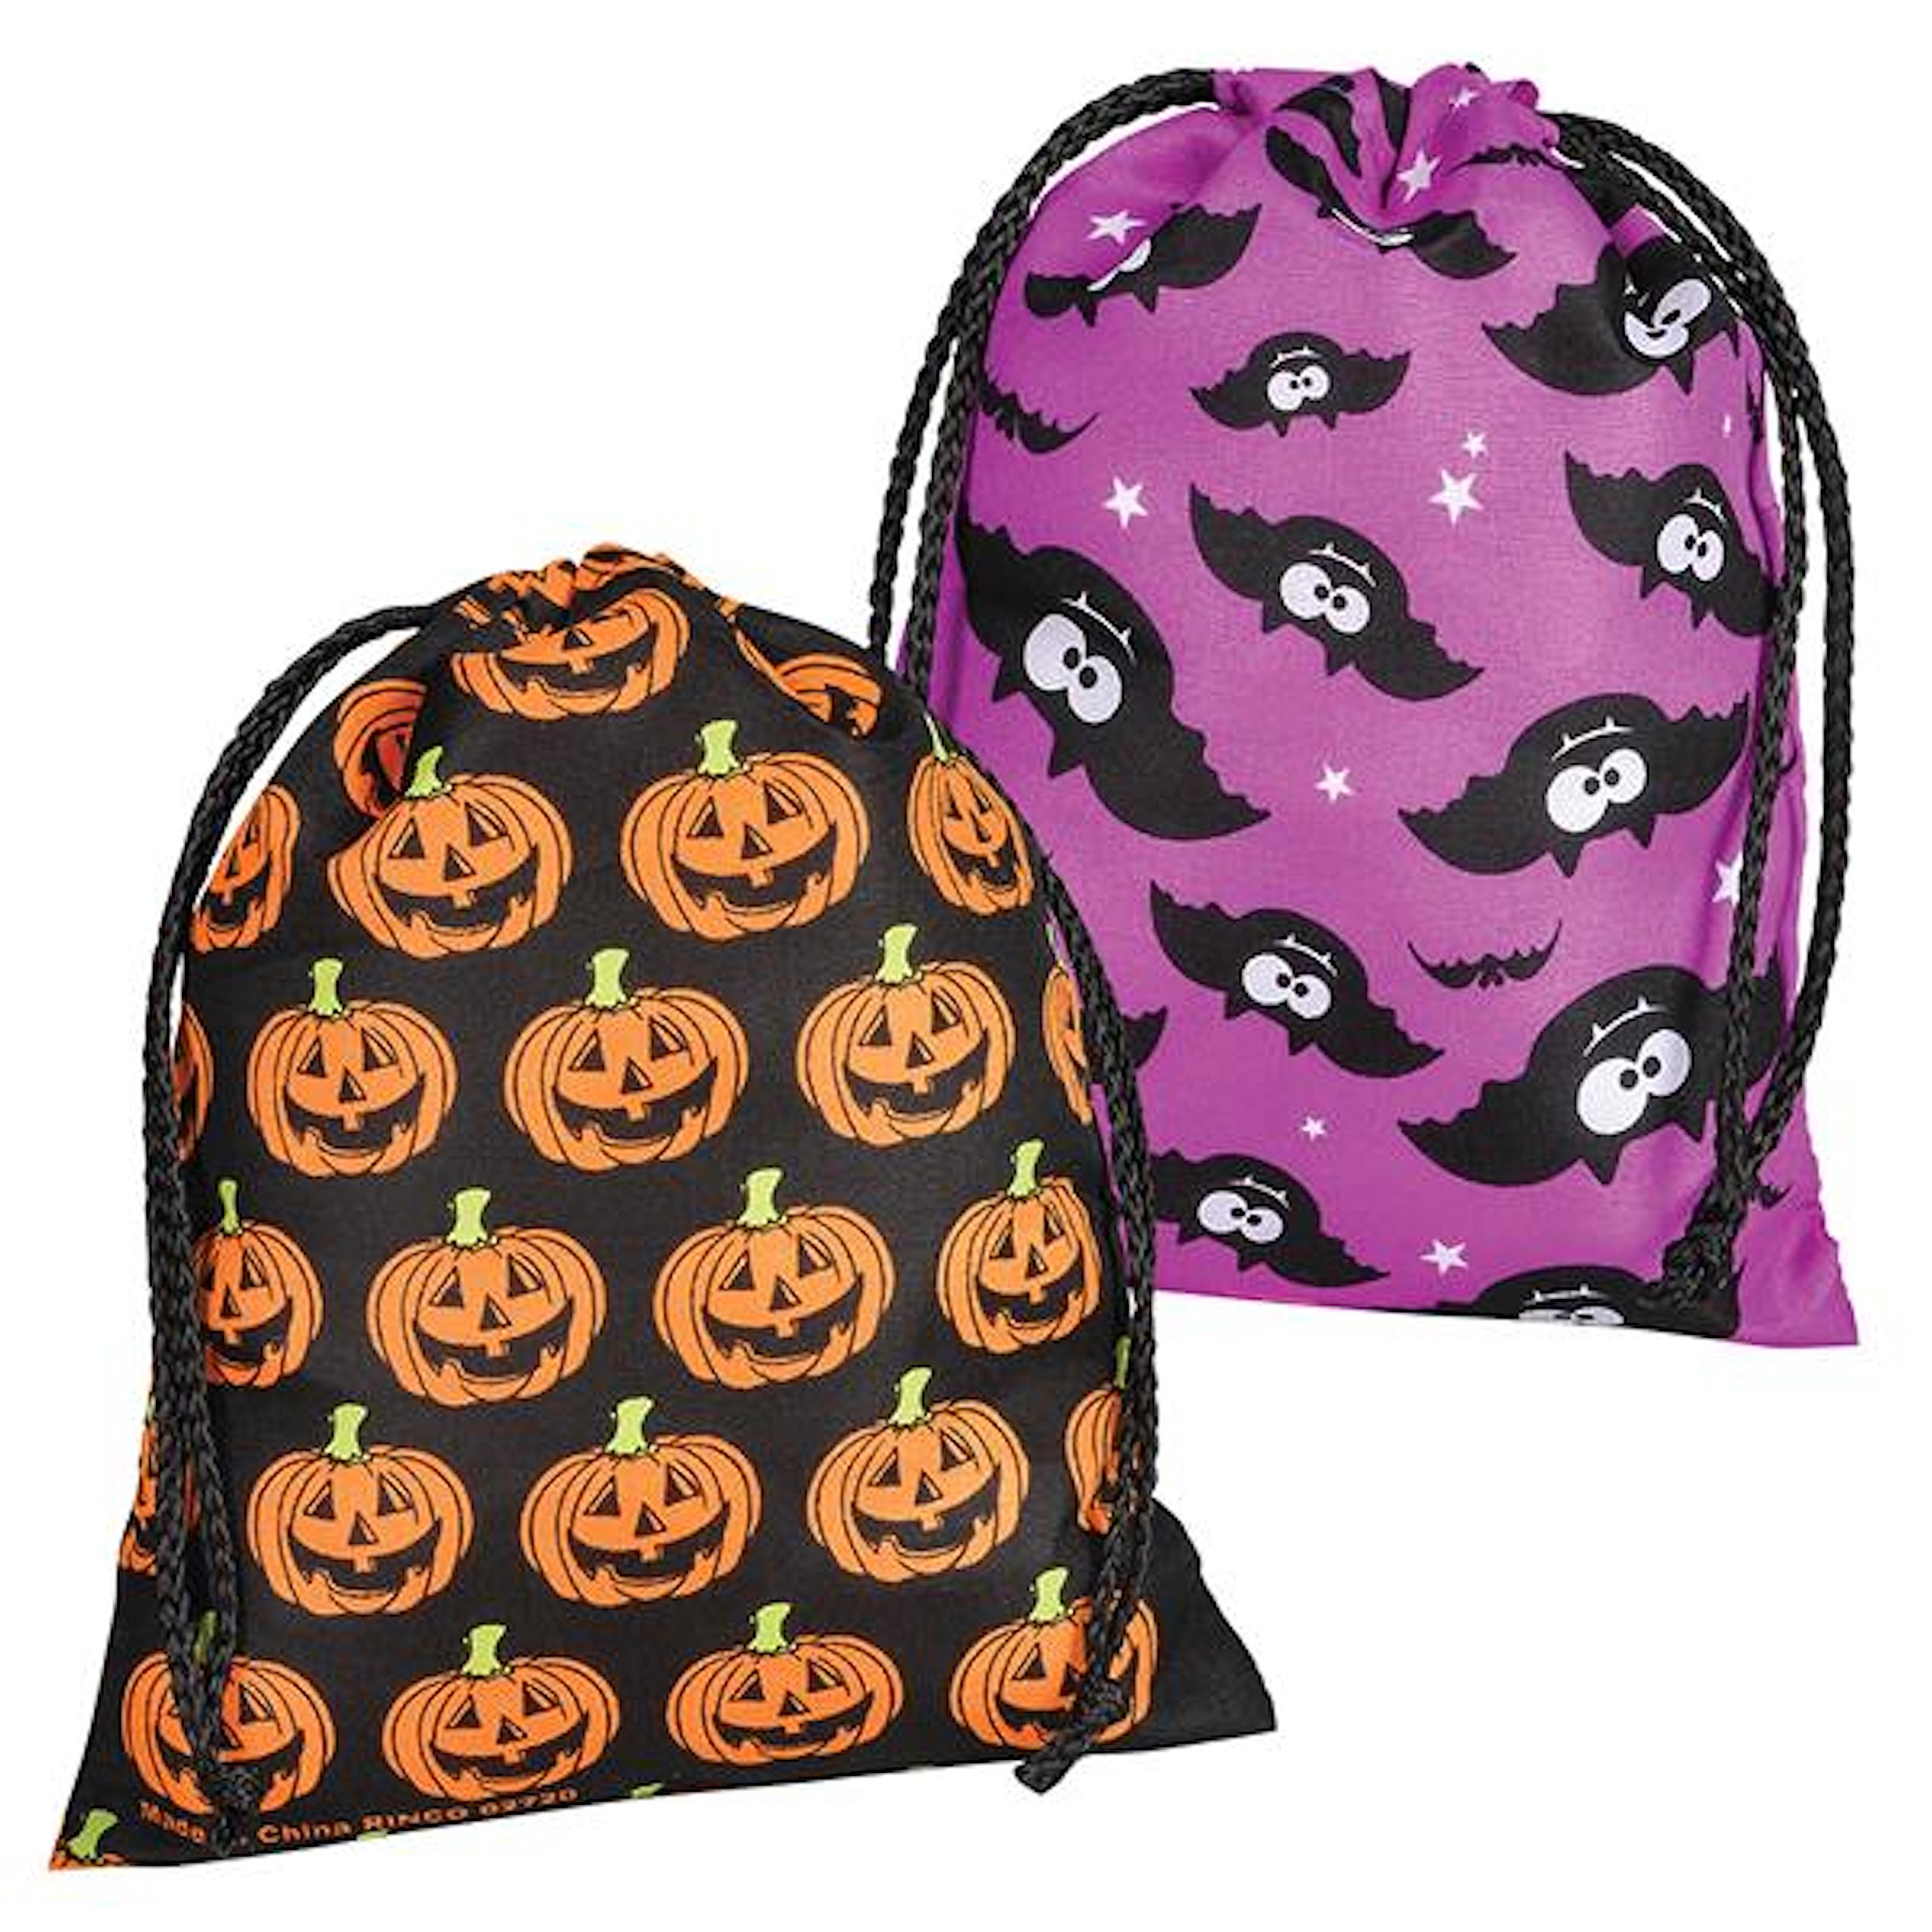 5f89a37762 Amazon.com  Rhode Island Novelty Large Assorted Halloween Drawstring Trick  Or Treat Bags